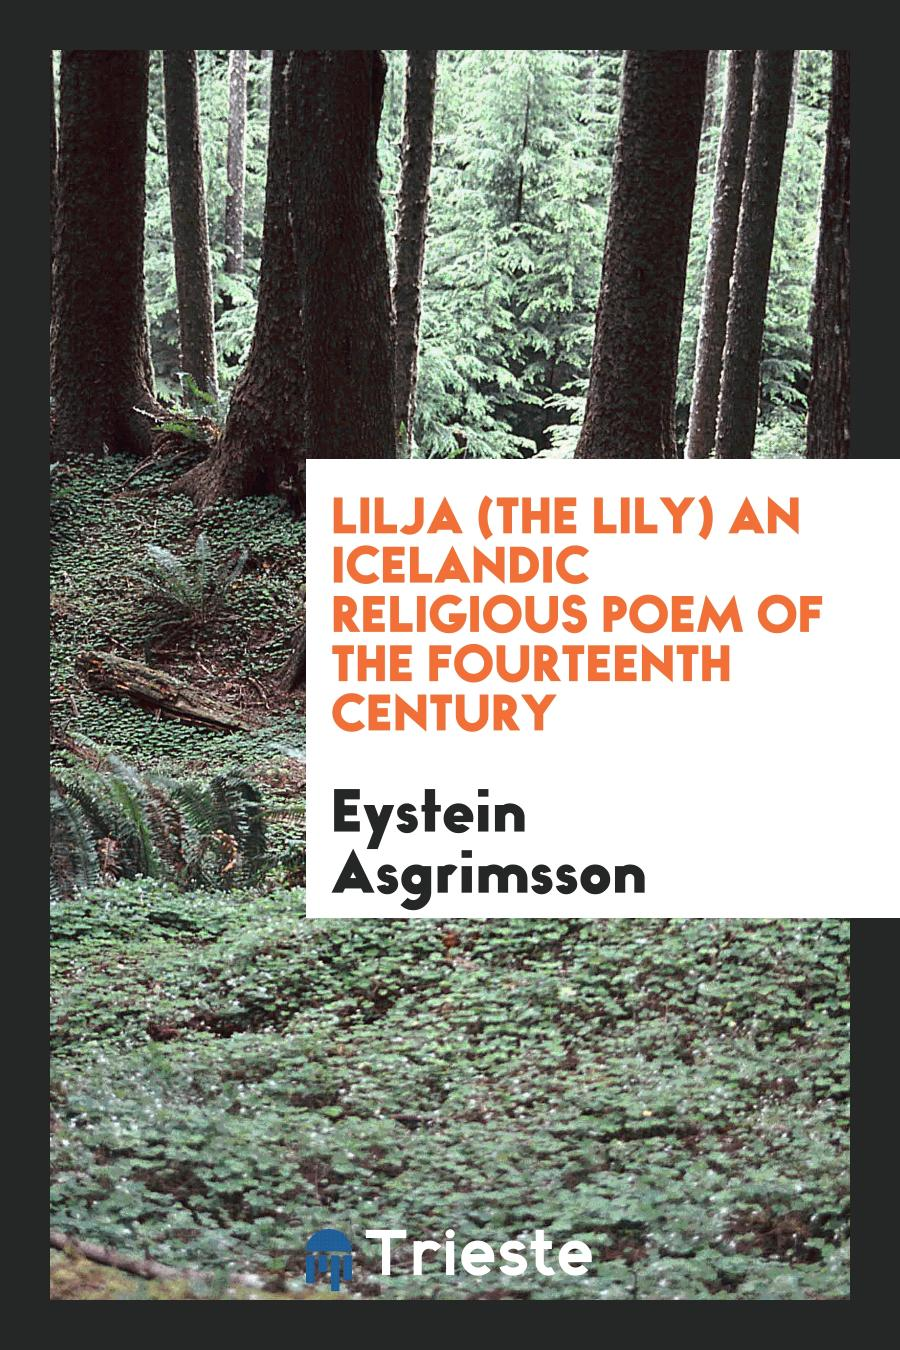 Lilja (the Lily) an Icelandic Religious Poem of the Fourteenth Century